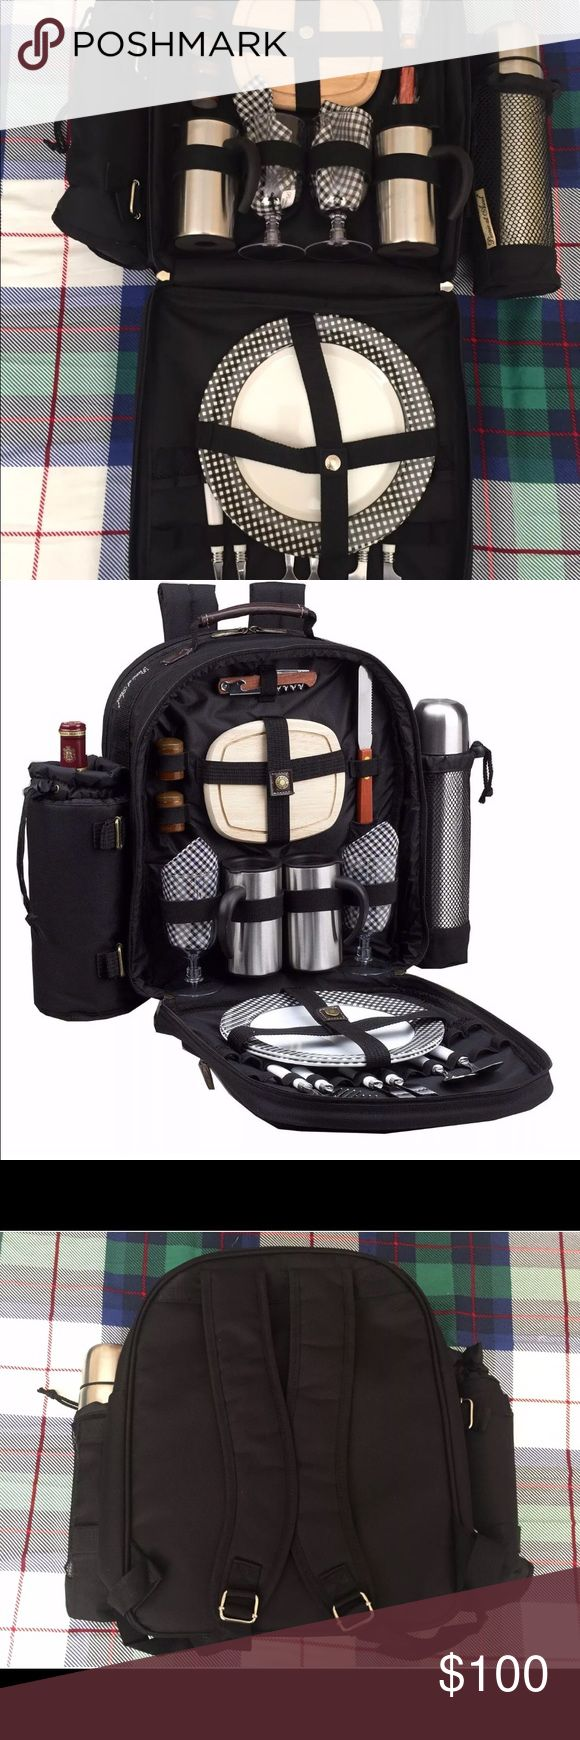 Picnic Backpack for 2, black Picnic at Ascot Classic Coffee/Picnic Backpack for 2 (082-BLACK) Condition: new.  Fully equipped picnic backpack with coffee service for two. Stainless steel vacuum flask (24 oz), double walled insulated coffee mugs with caps, melamine plates, stainless steel flatware, acrylic wine glasses, napkins, hardwood cutting board, cheese knife, wooden salt and pepper shakers and a combination corkscrew.   Color: Black w/Gingham napkins Size (H X W X D): 15.5 X 19 X 6.5…